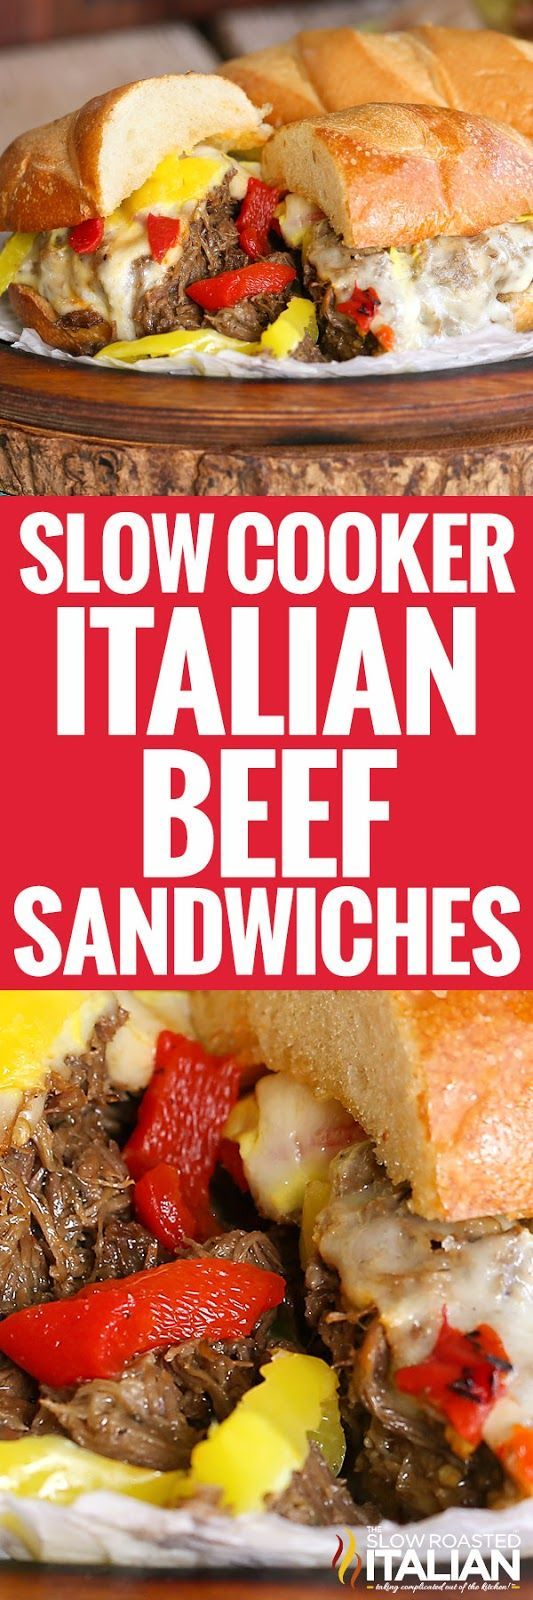 Slow Cooker Italian Beef Sandwiches (With Video)